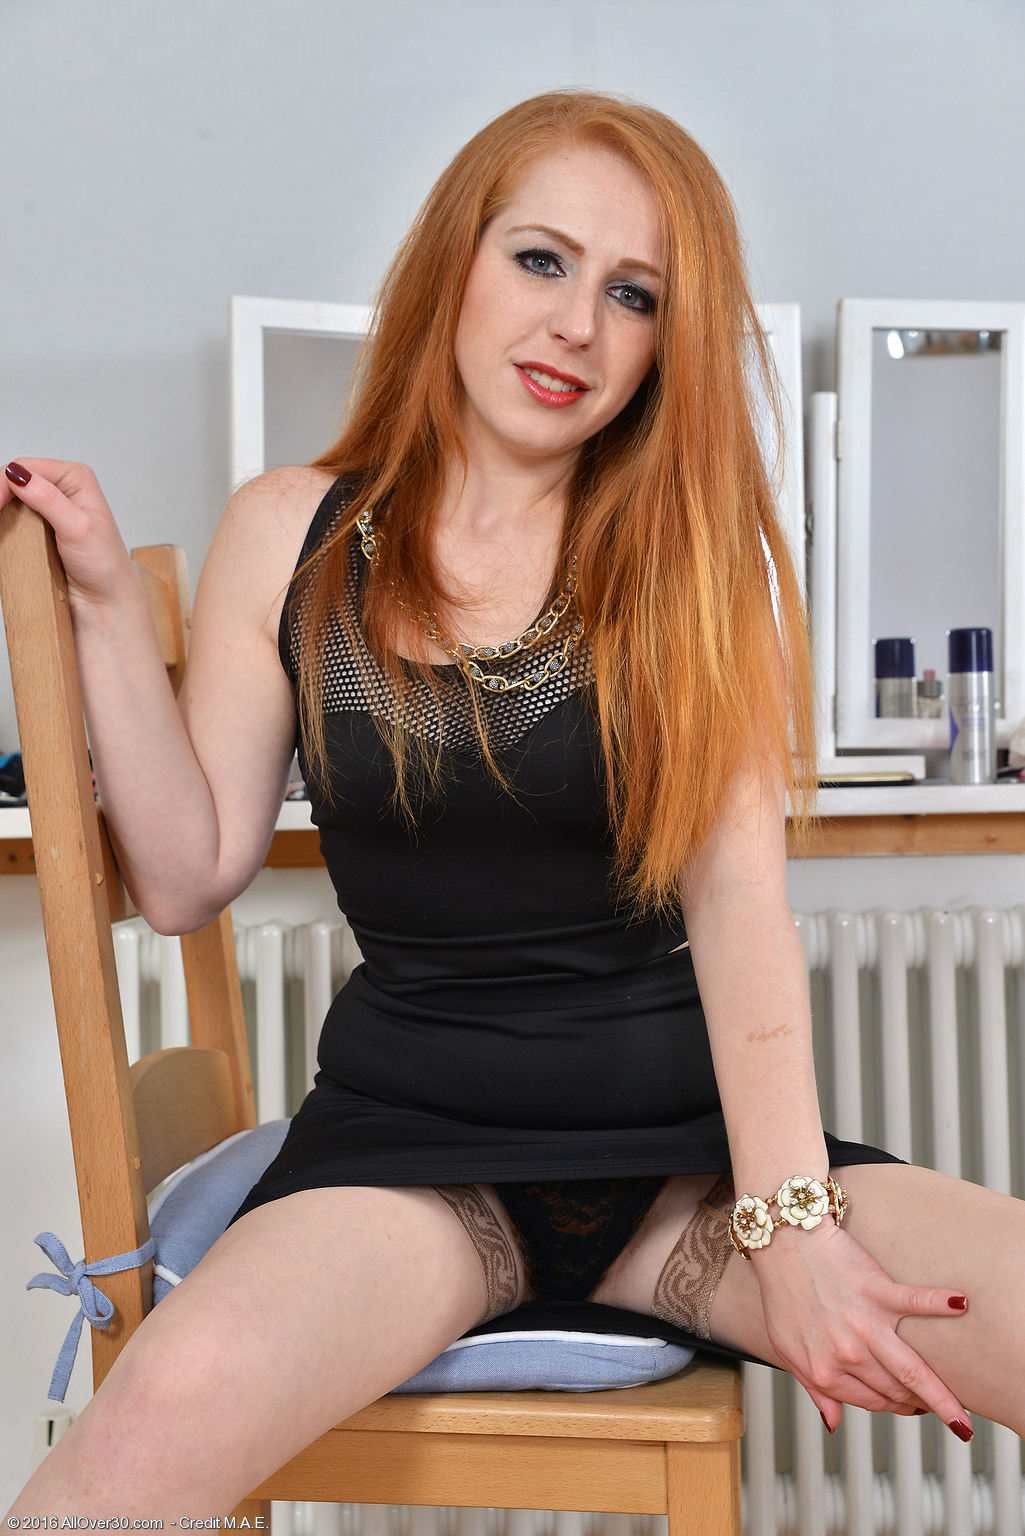 Nika mc nudes red shoes